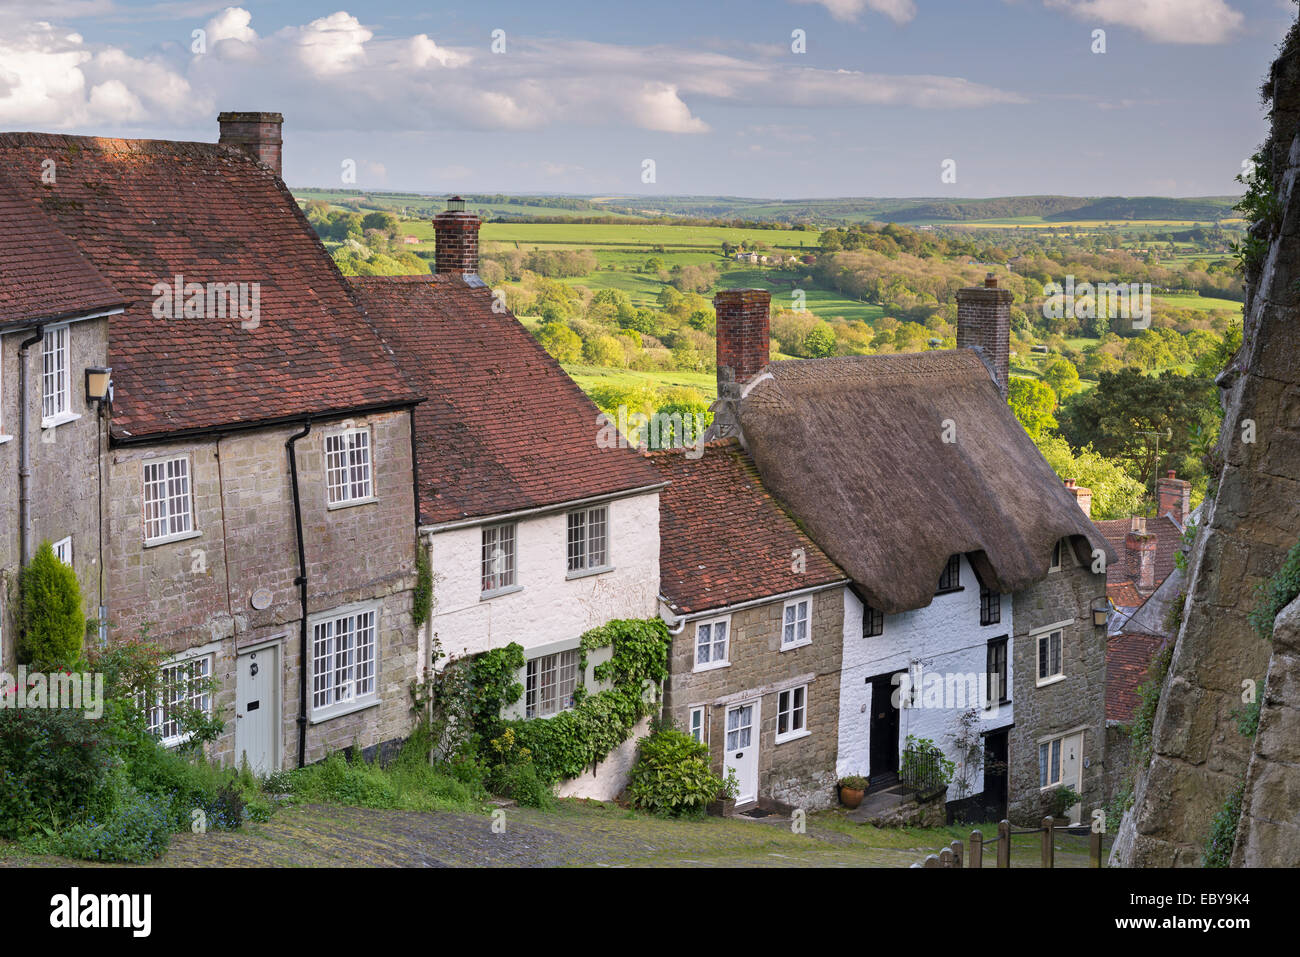 Picturesque Gold Hill in Shaftesbury, Dorset, England. Spring (May) 2014. - Stock Image